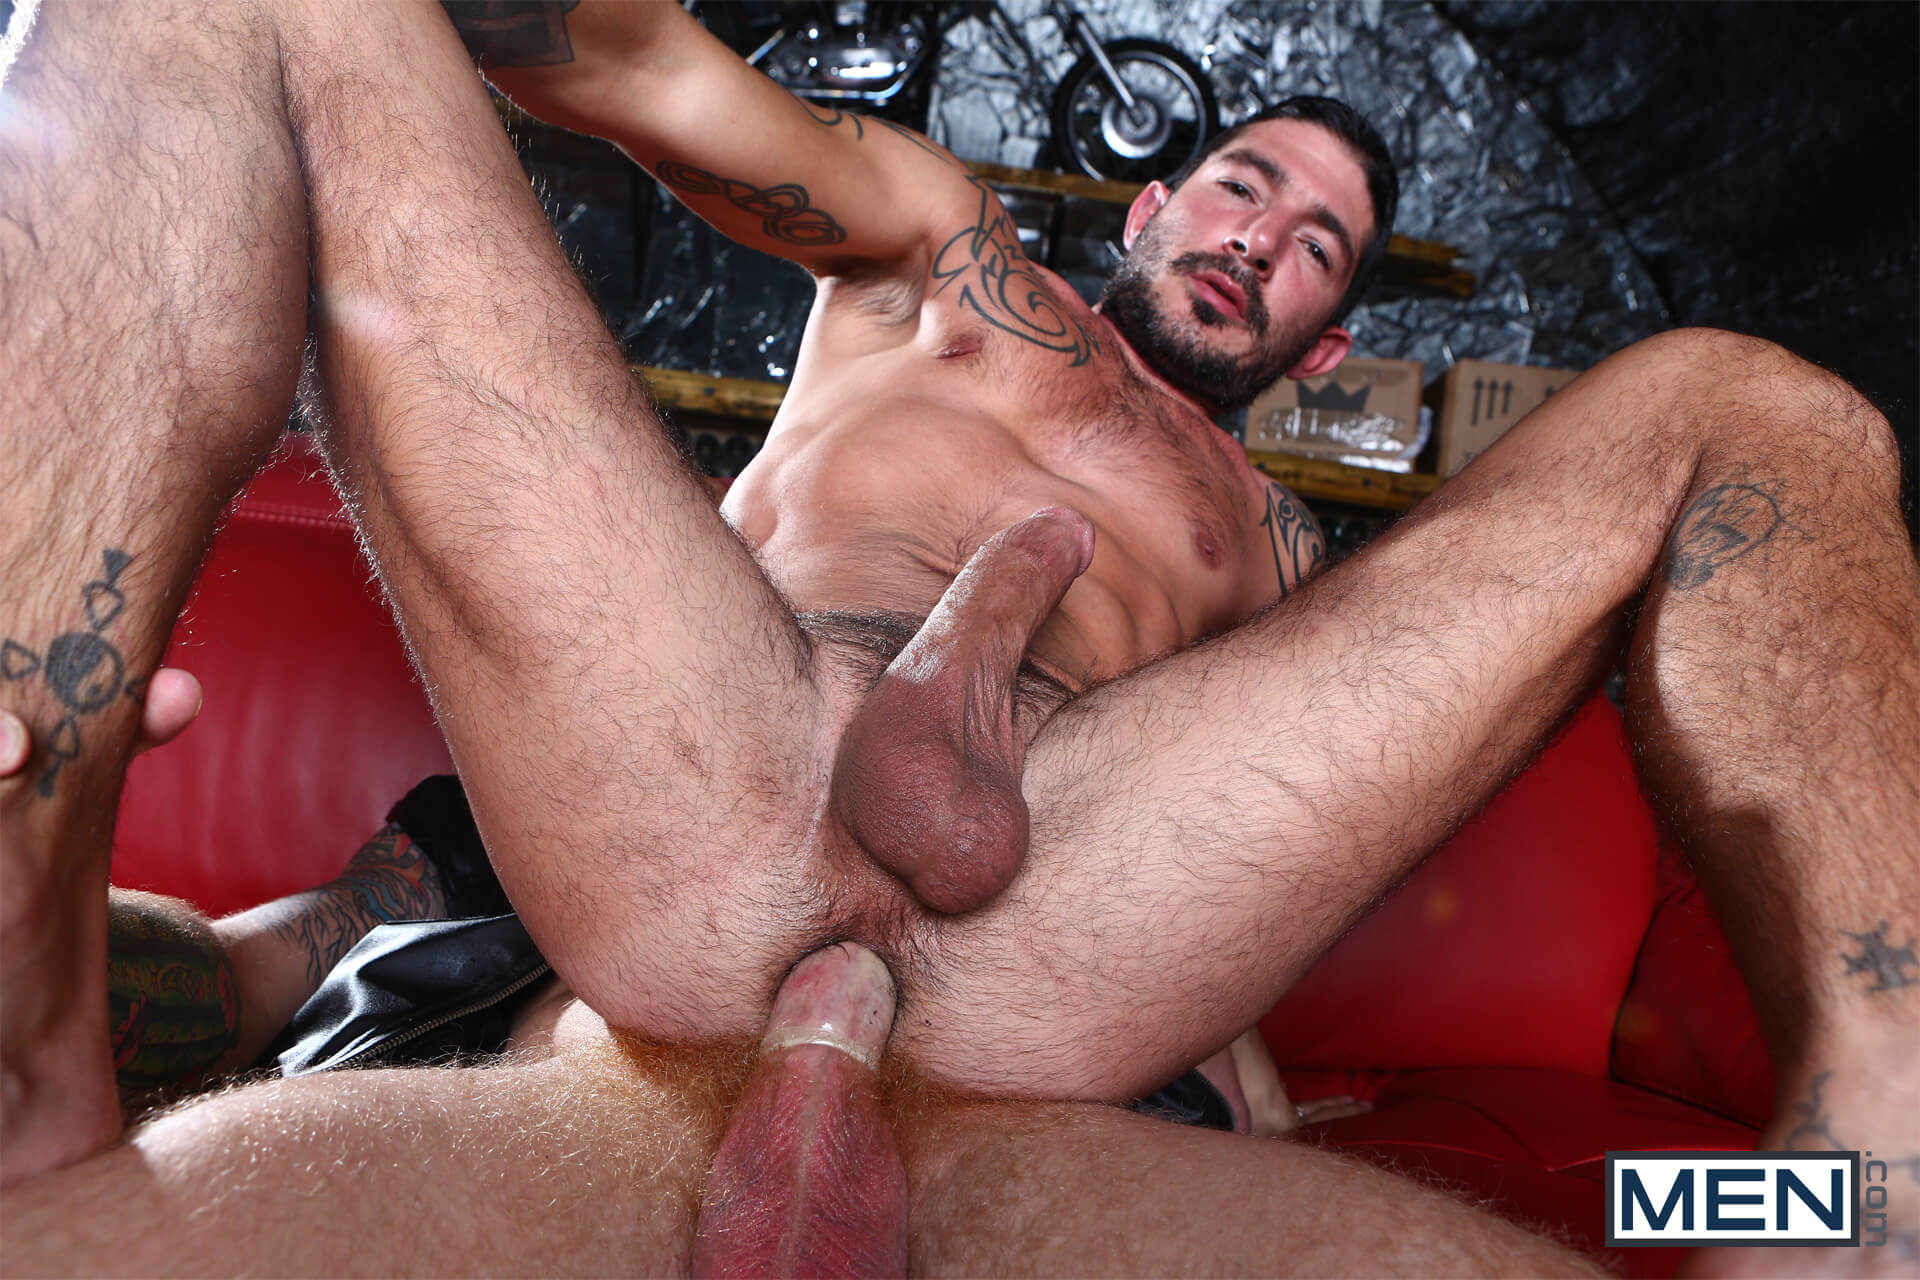 men drill my hole men of anarchy part 2 bennett anthony johnny hazzard gay porn blog image 17